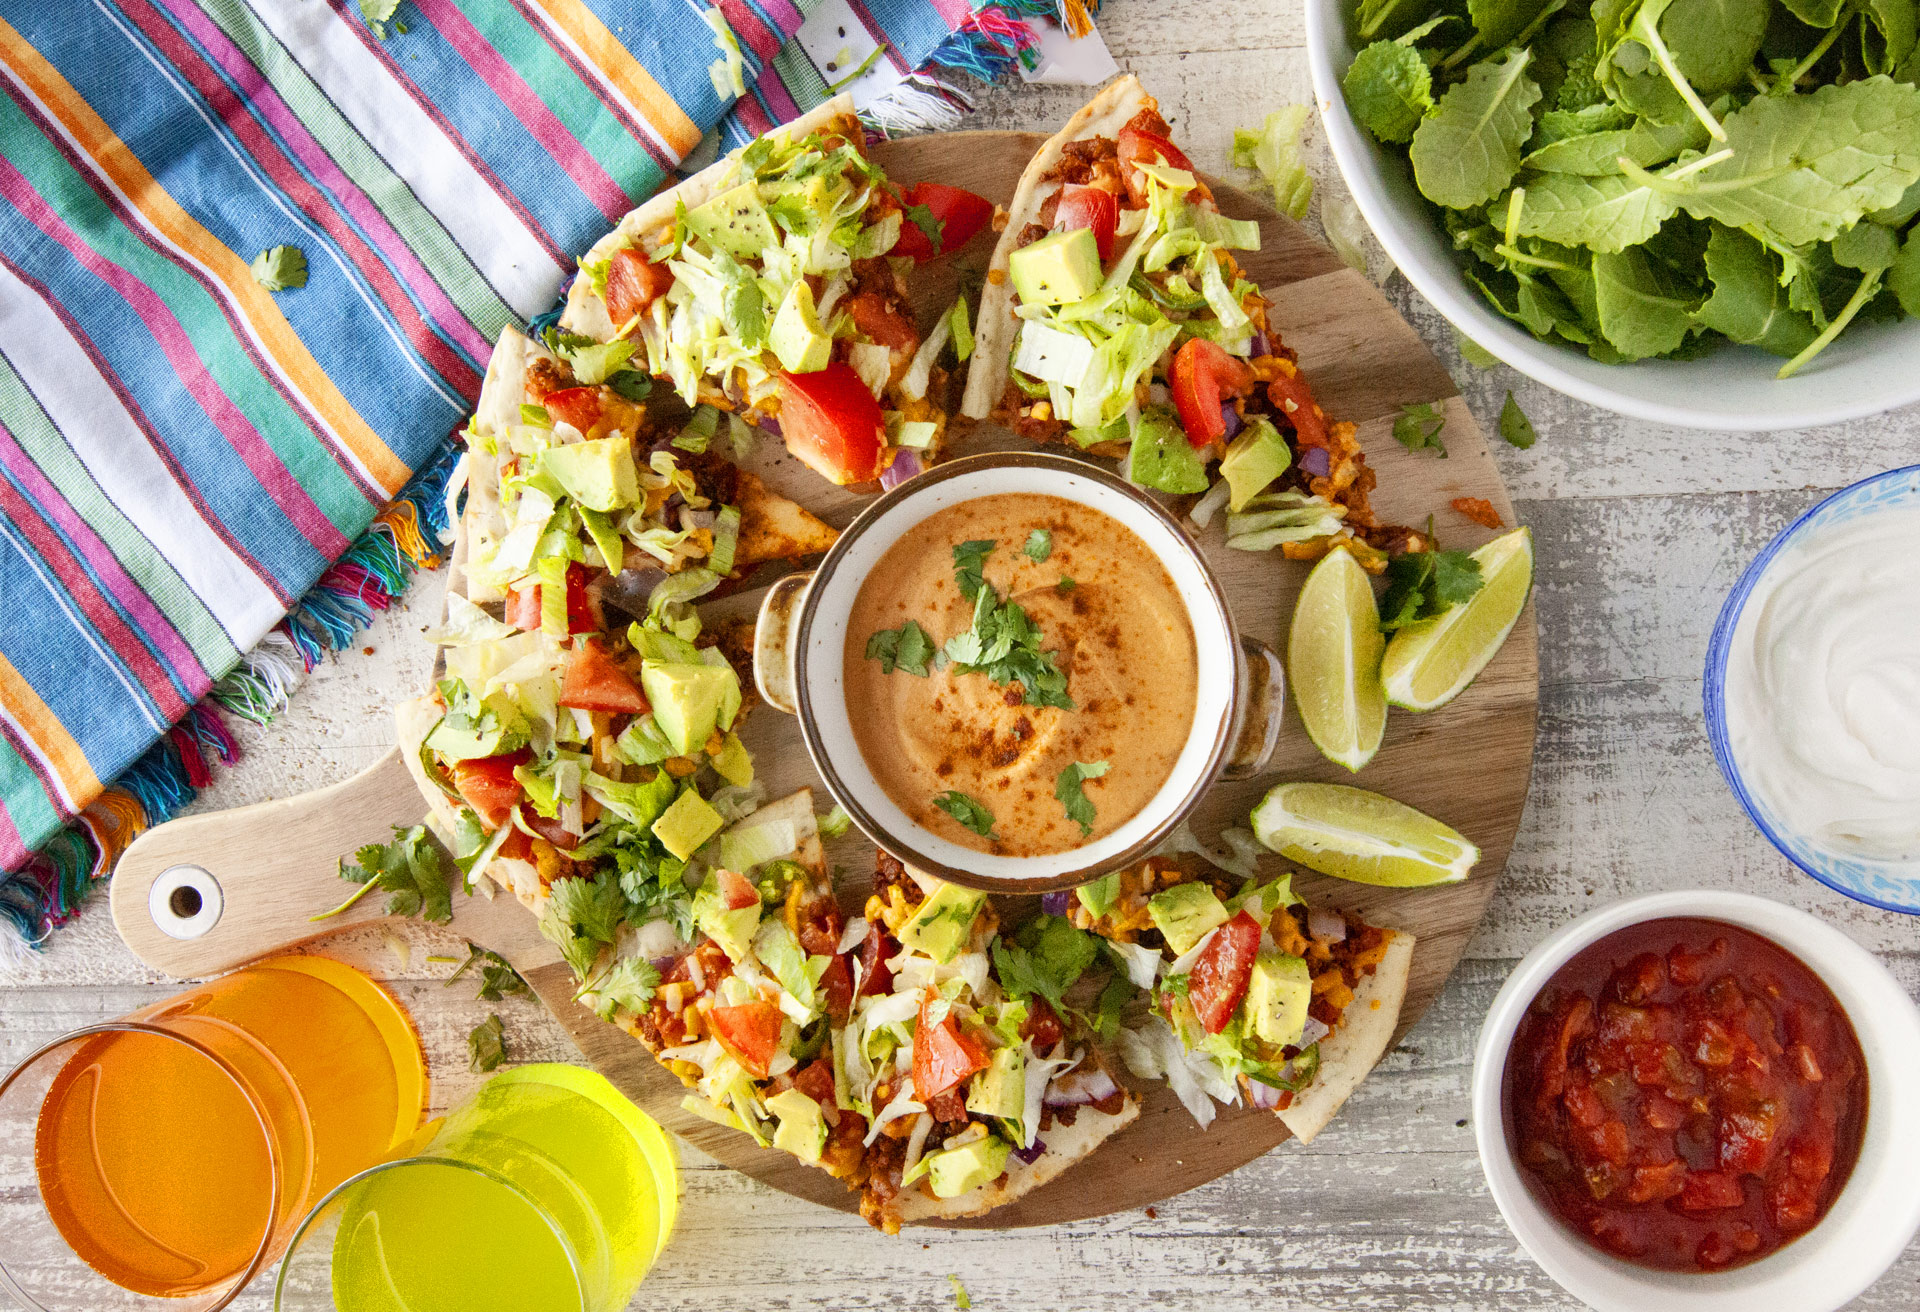 Recipe: Gluten-free Nacho Pizza with Nut-free Vegan Queso on Little Northern Bakehouse Artisan Style Gluten Free Pizza Crust